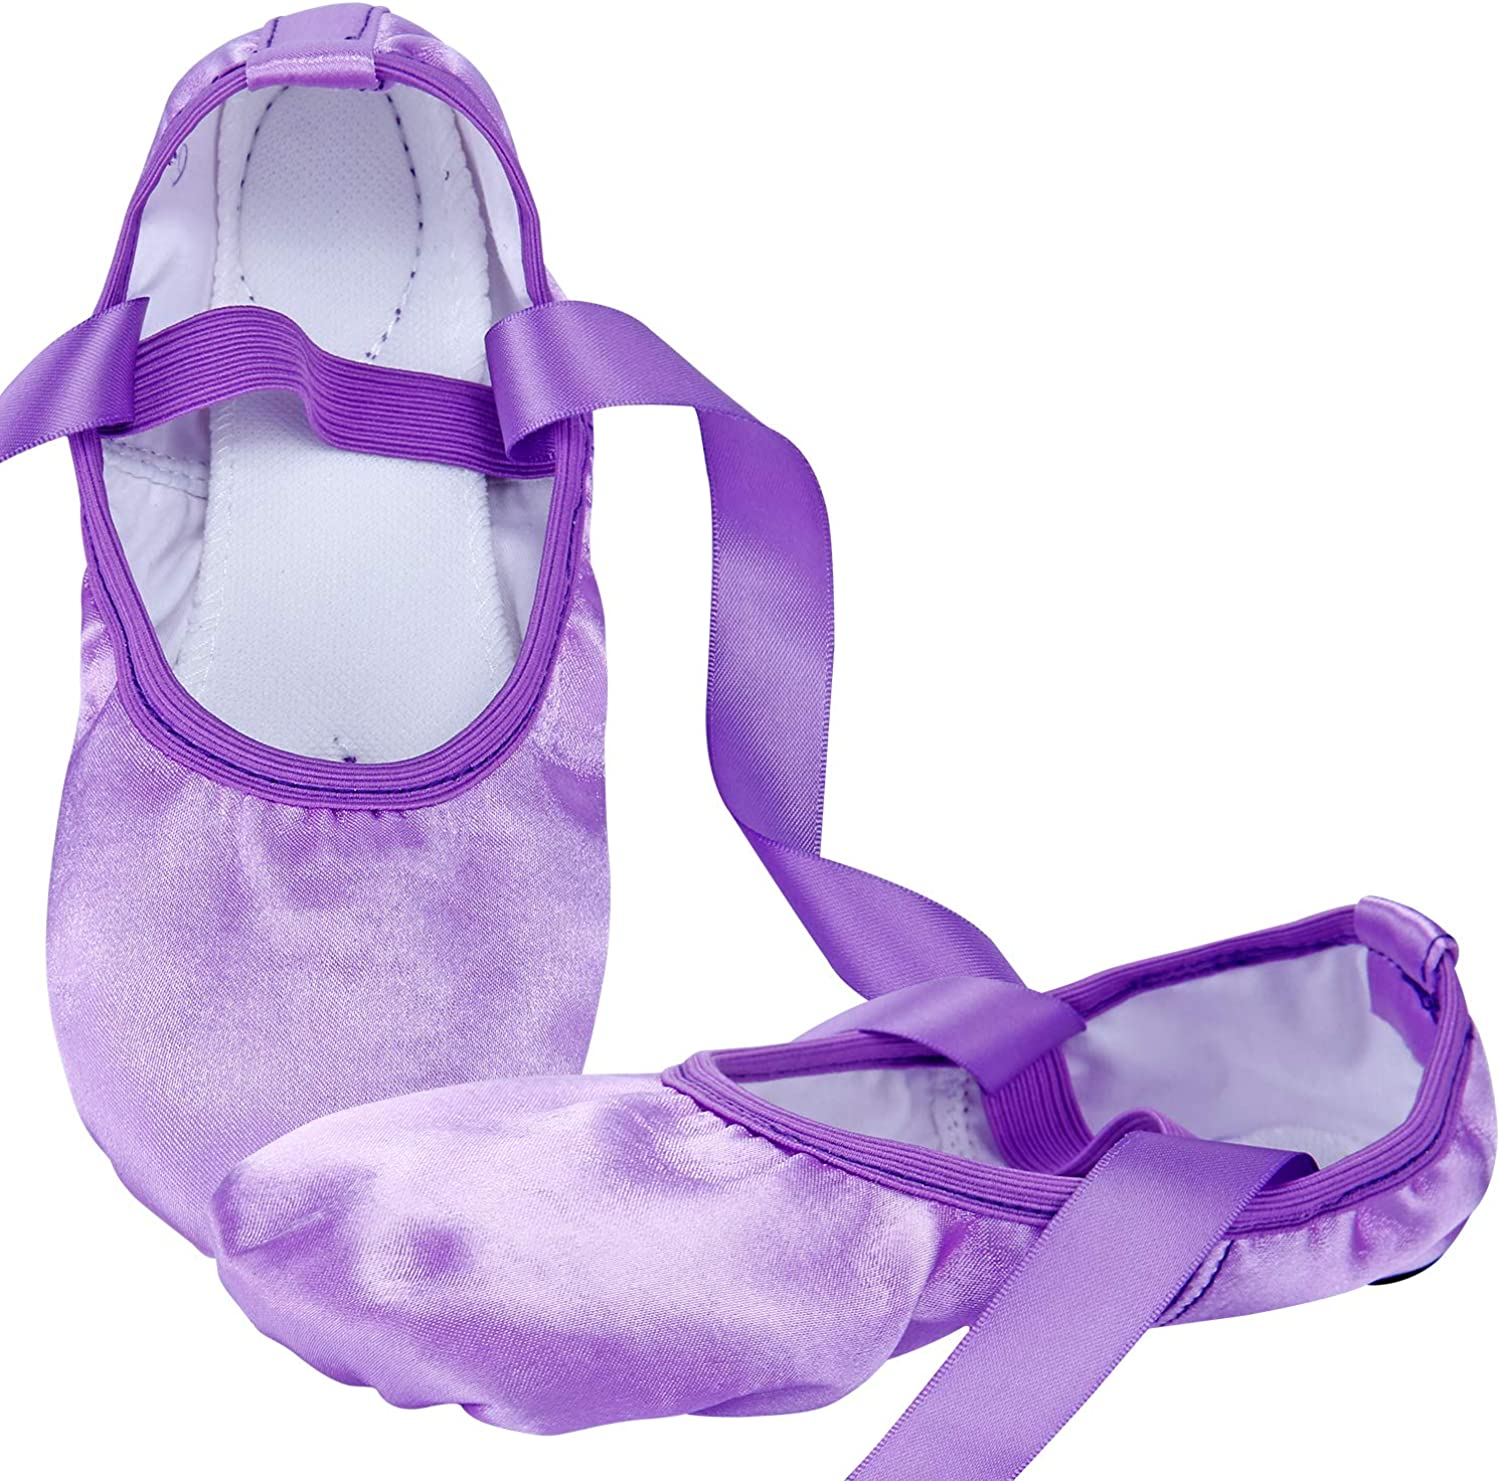 WENDYWU Girls Ballet Dance Shoes Purple Flat Slipper with Ribbon